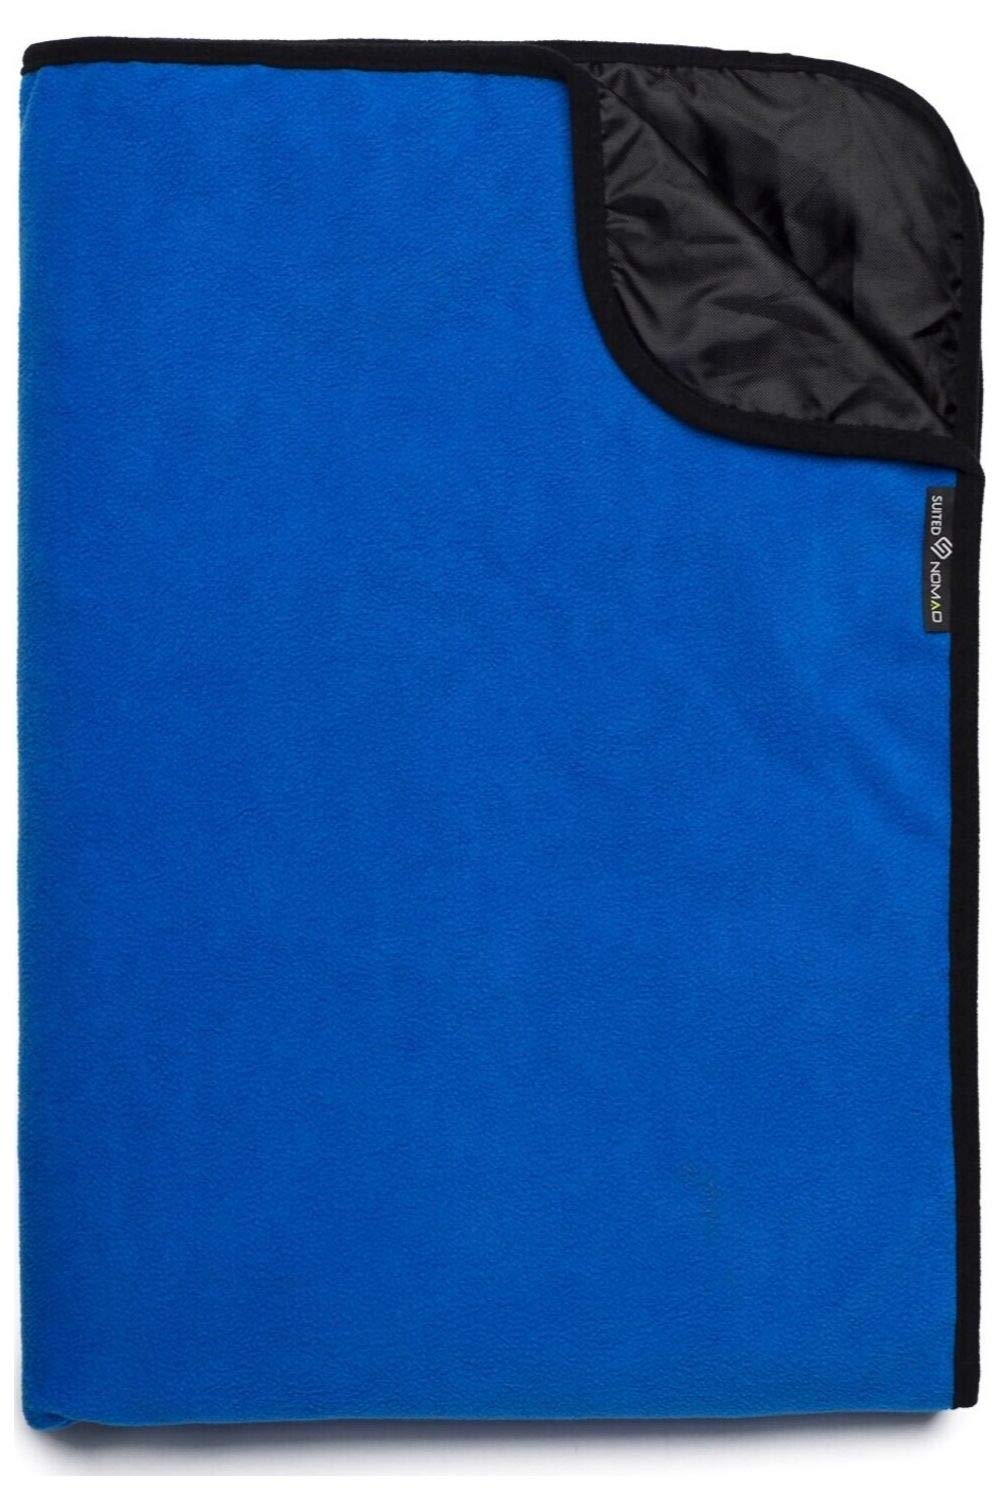 SuitedNomad 30°F Extreme Weather Stadium Blanket with Thermal Reflective Liner, XL Waterproof Windproof Fleece Outdoor Blanket,Patent Pending Desing Great for Cold Weather Camping,Sports,Festivals